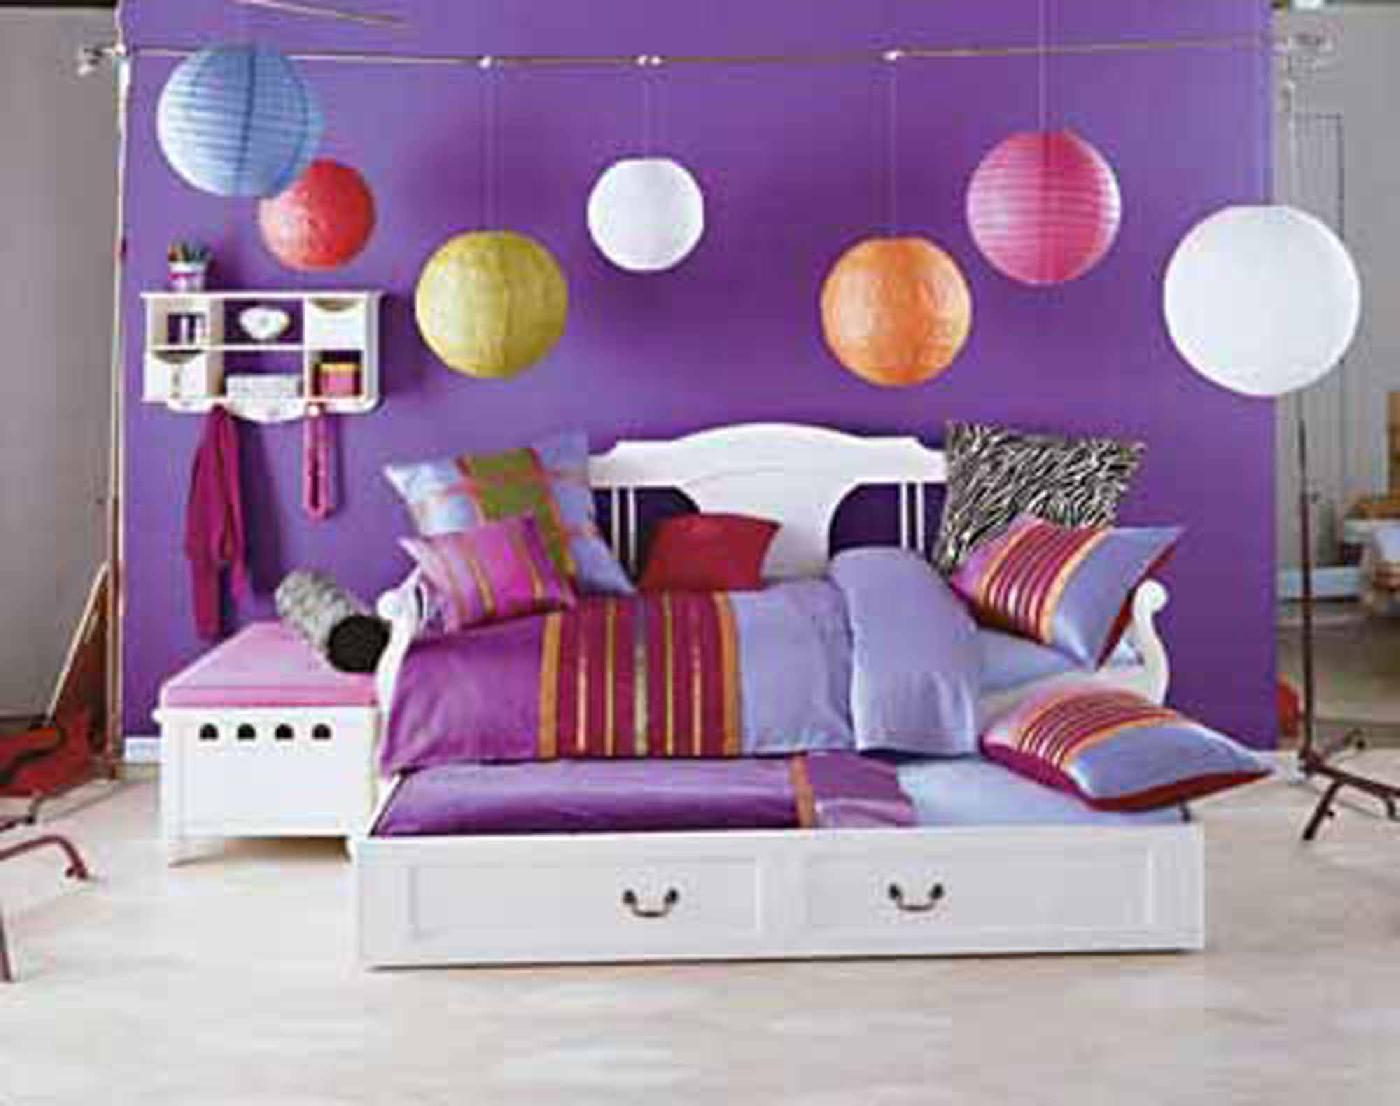 Tantalizing Lamp Shade also Comfortable Bed For Tween Bedroom Ideas